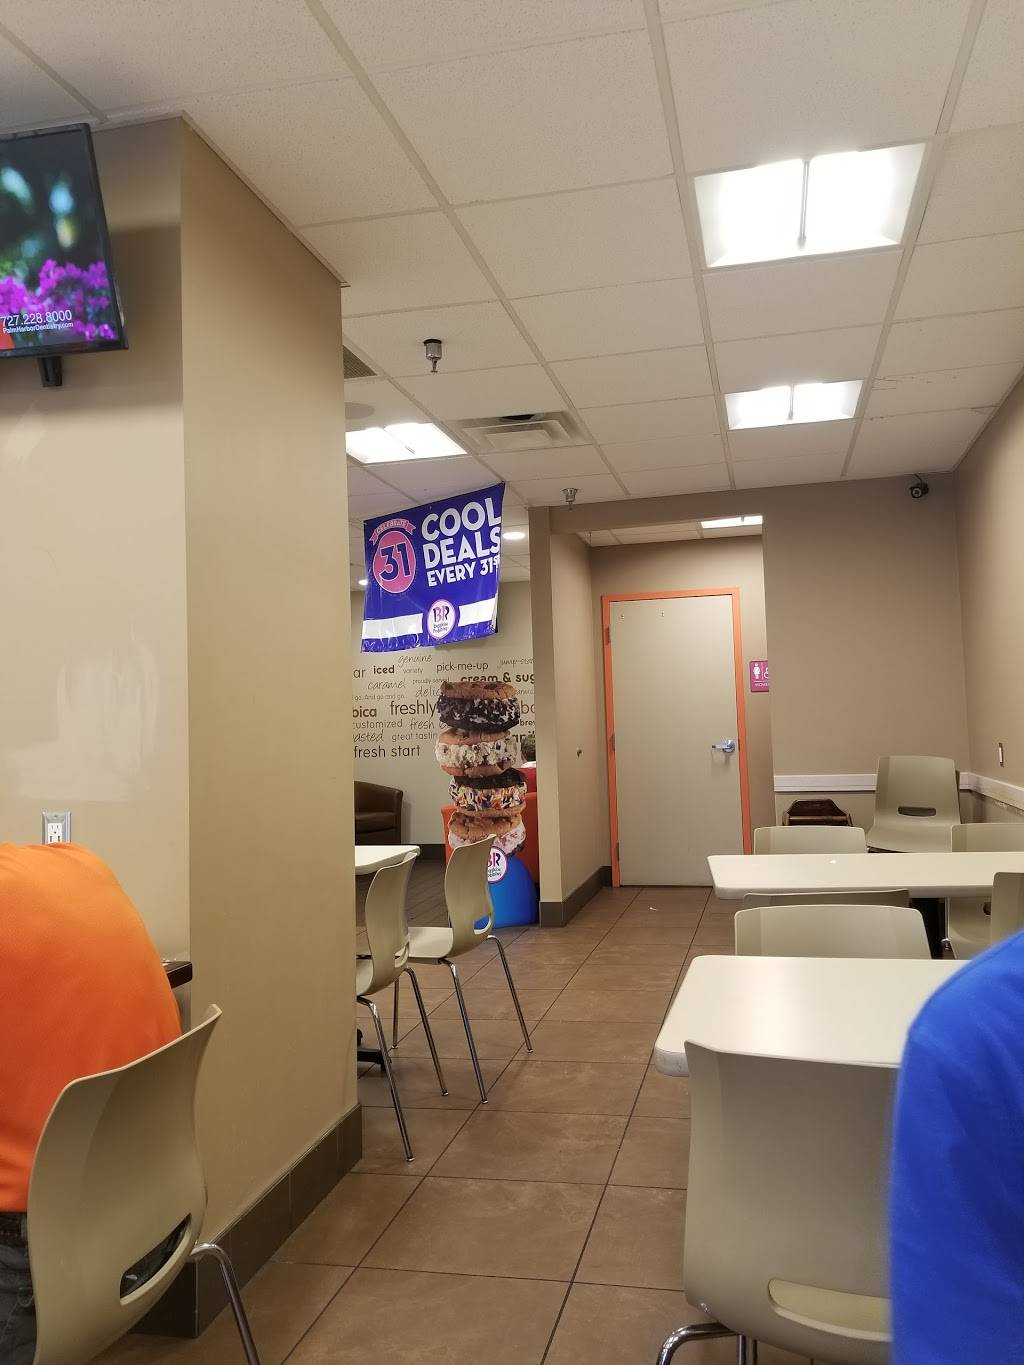 Dunkin Donuts   cafe   2451 McMullen Booth Rd, Clearwater, FL 33759, USA   7272235906 OR +1 727-223-5906